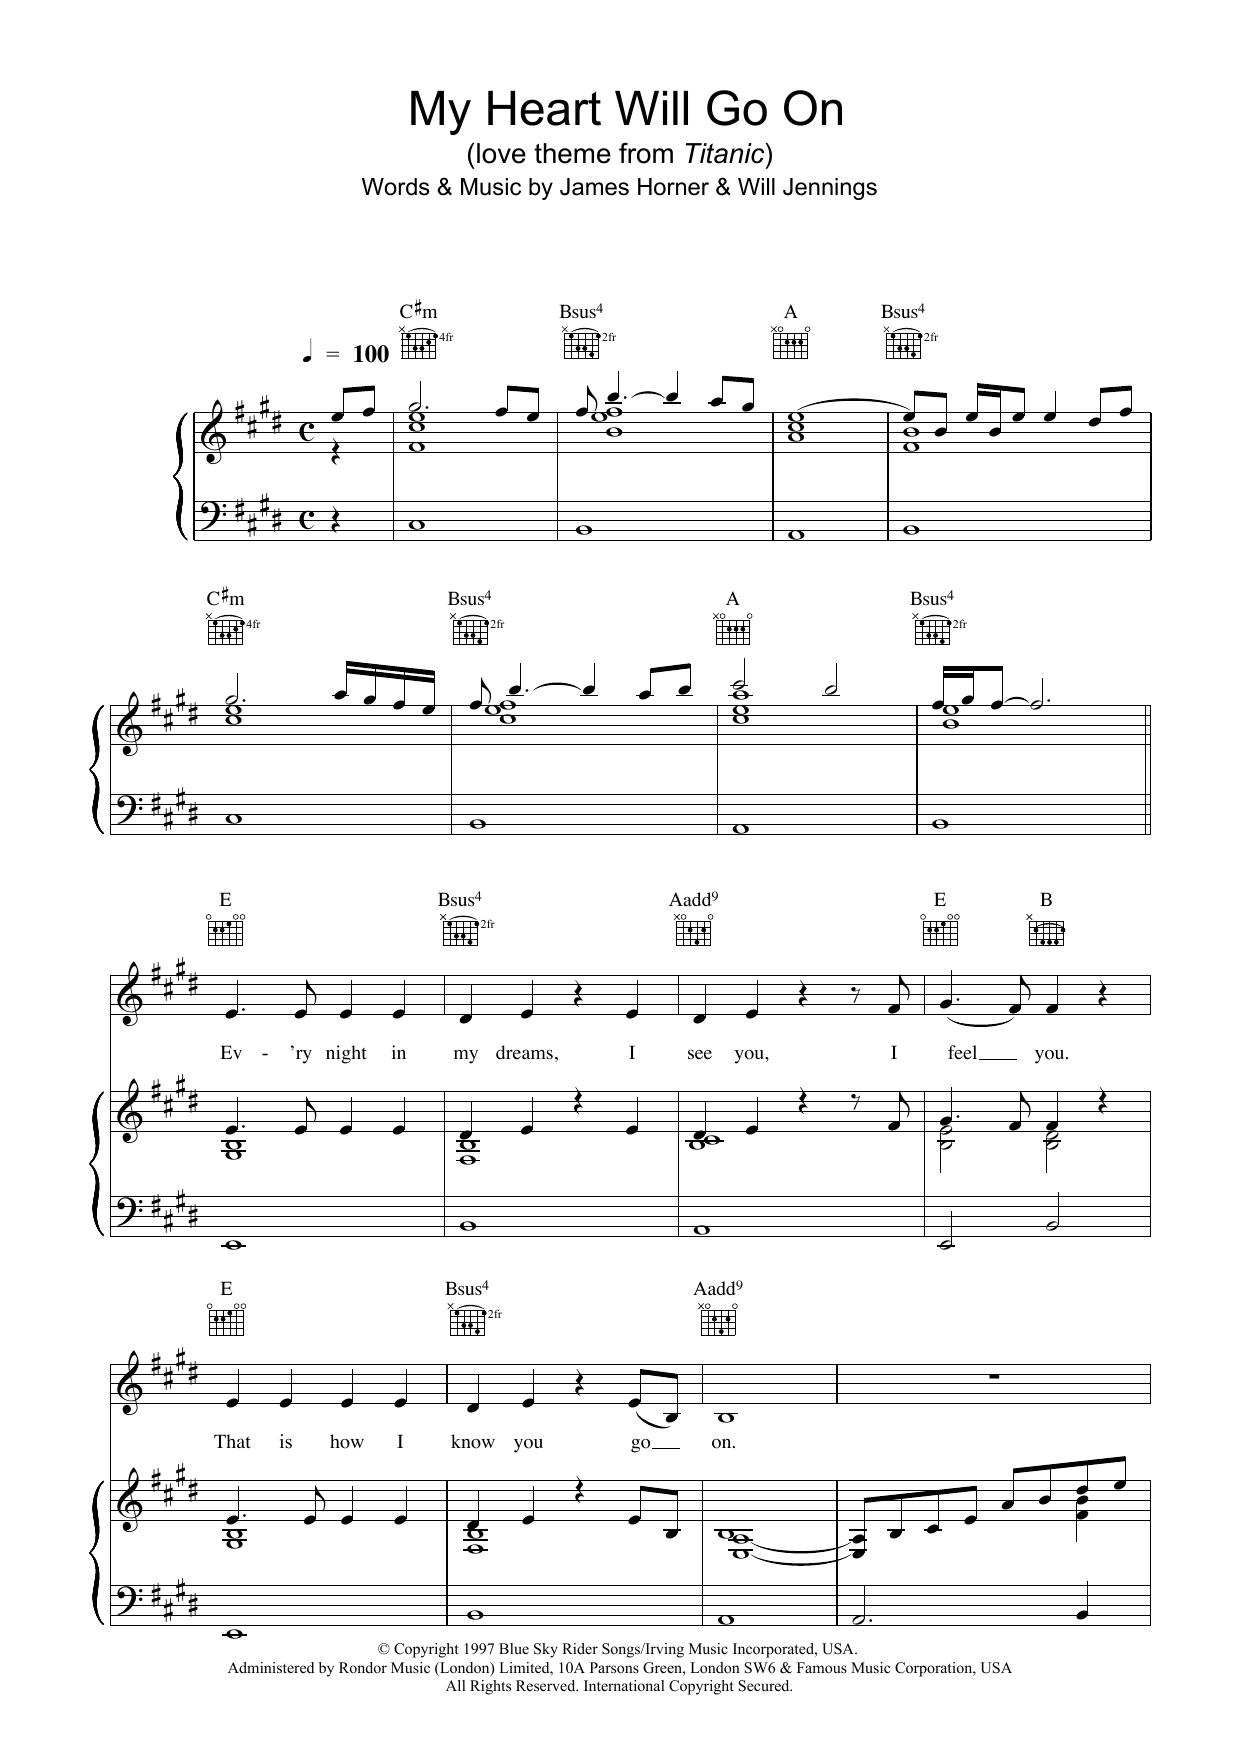 graphic regarding My Heart Will Go on Piano Sheet Music Free Printable referred to as My Center Will Shift Upon (Get pleasure from Topic Towards Titanic)